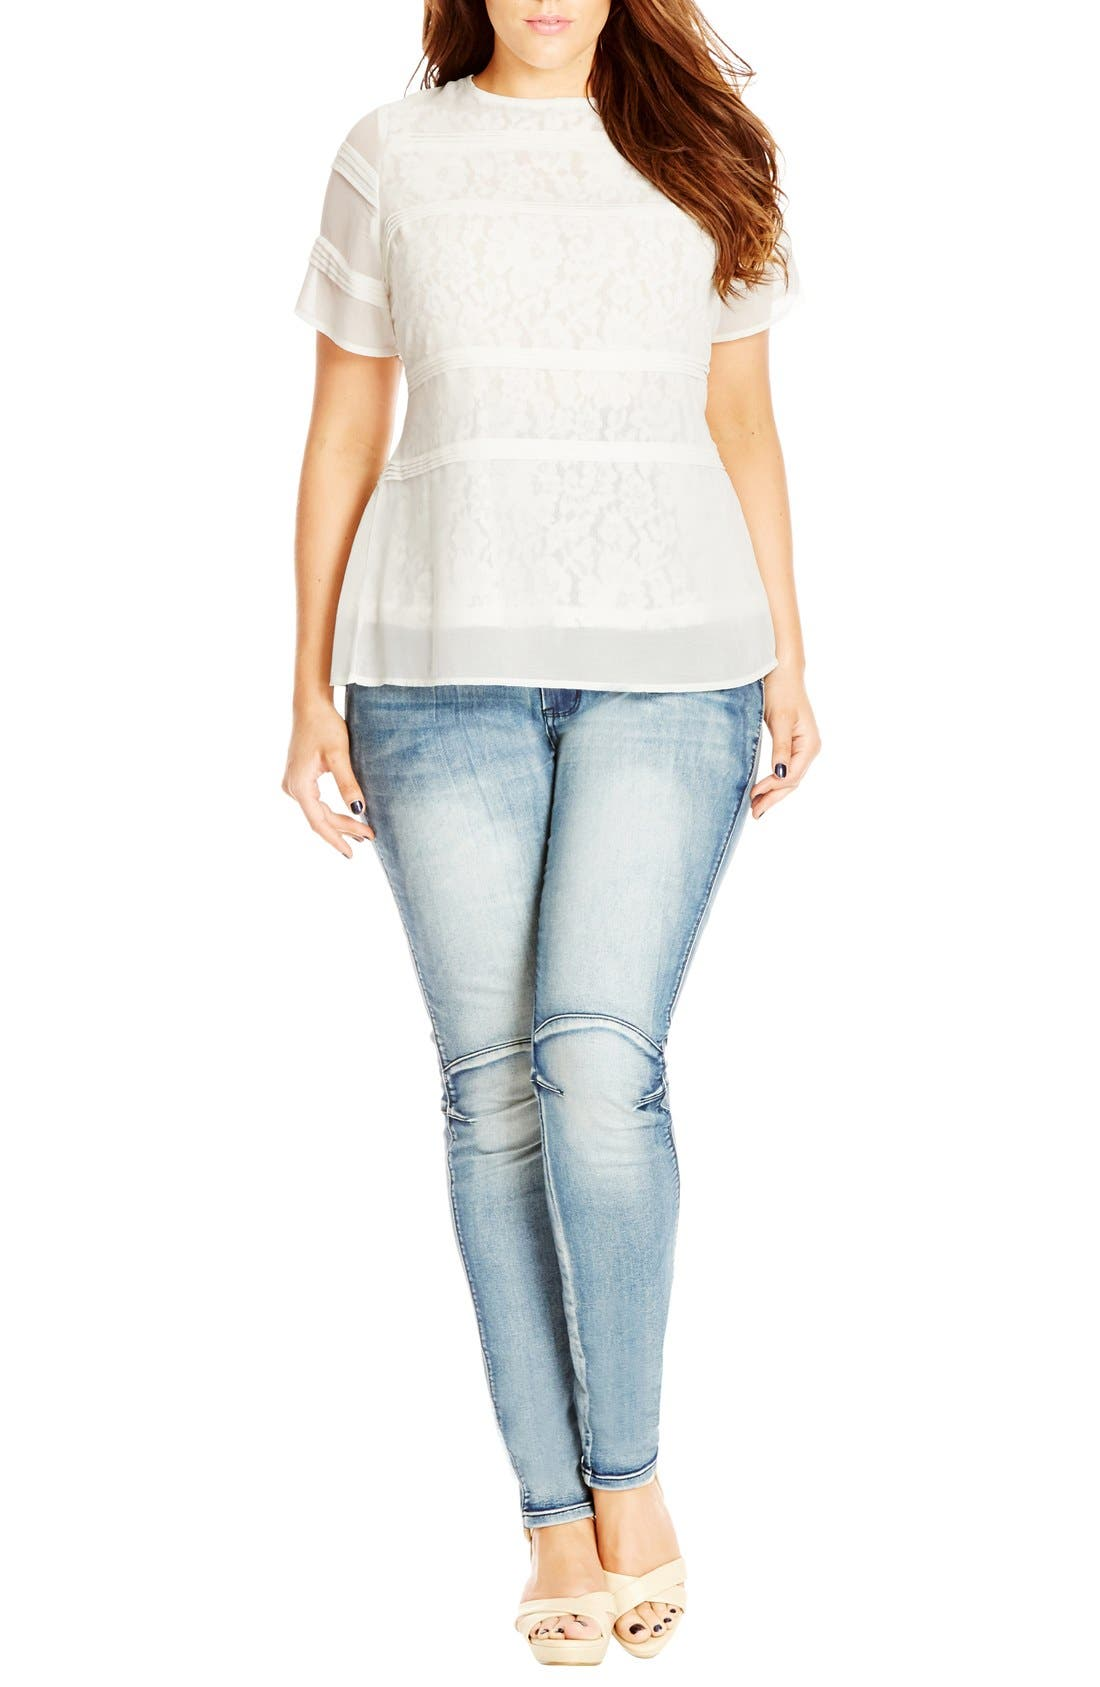 Main Image - City Chic Pintuck Lace Layer Top (Plus Size)